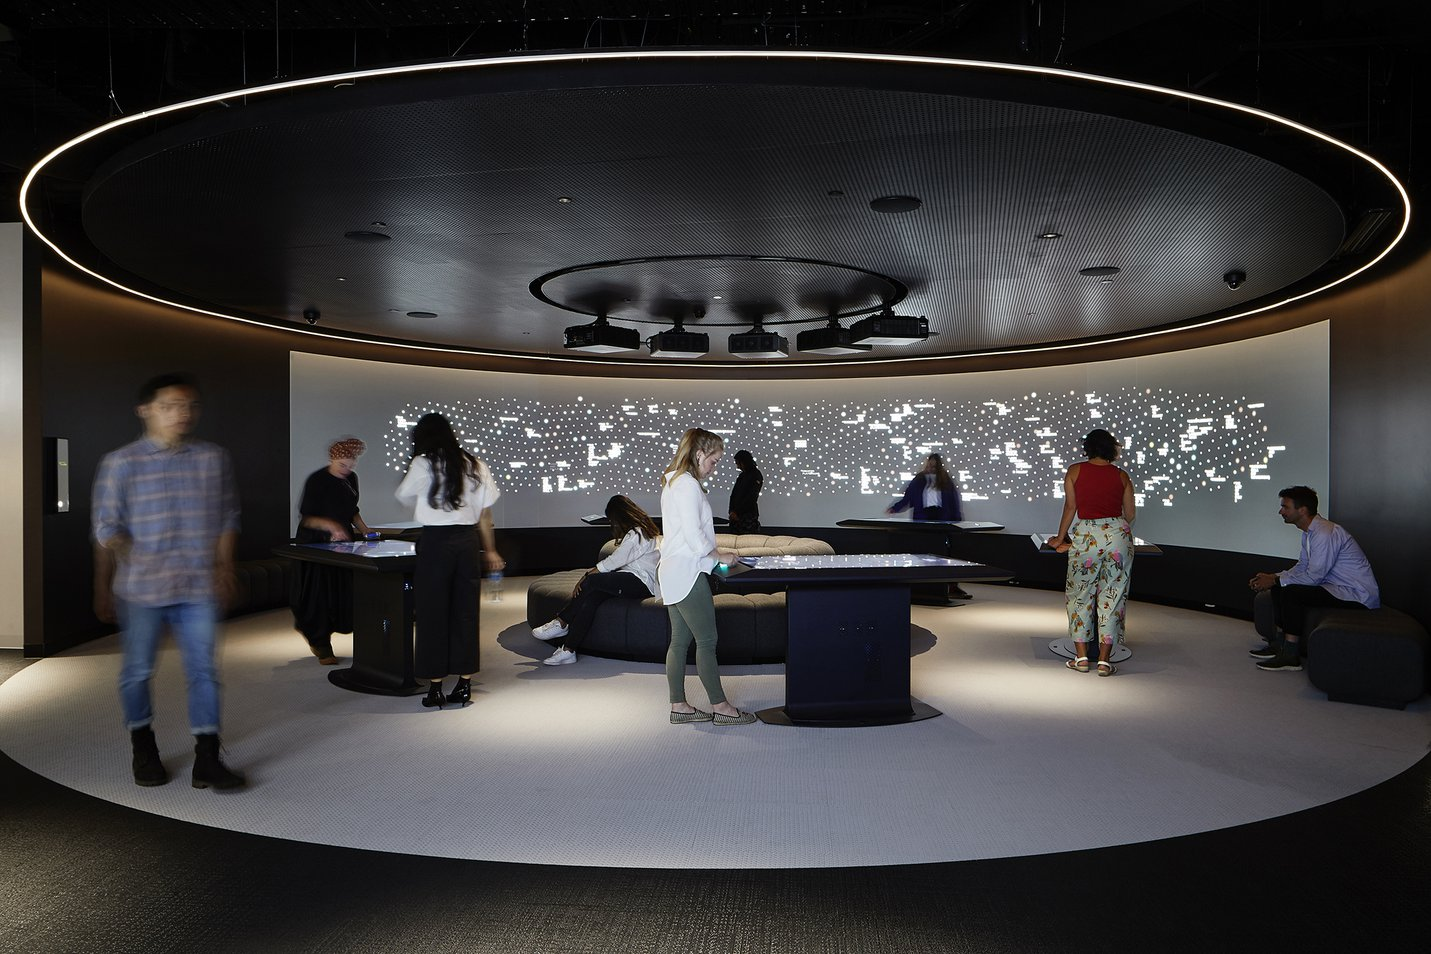 The Constellation at ACMI - photograph by Shannon McGrath